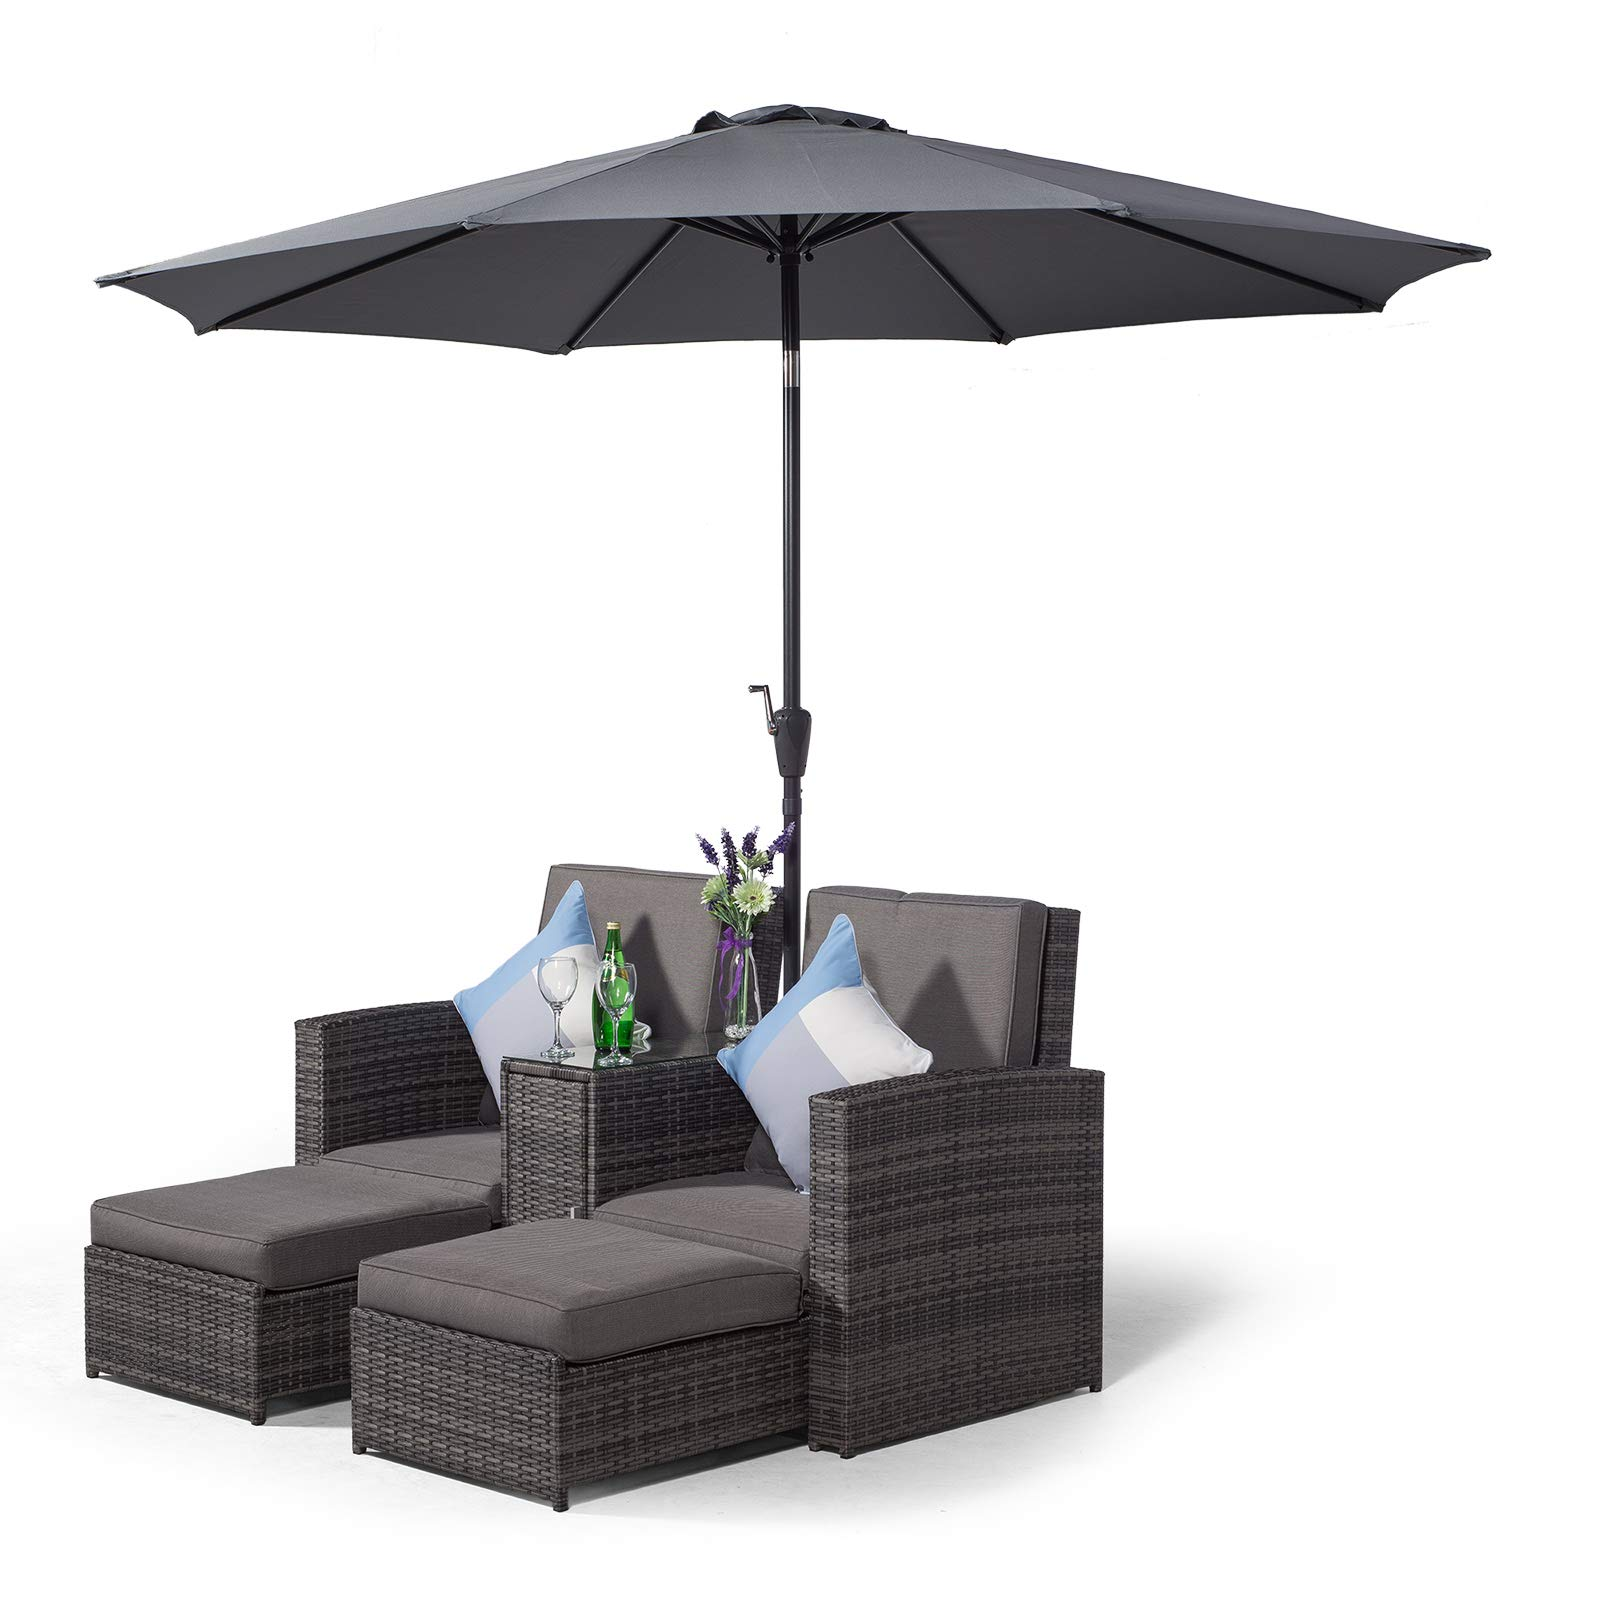 Awesome Giardino Nevada Double Reclining Grey Rattan Sun Loungers Caraccident5 Cool Chair Designs And Ideas Caraccident5Info